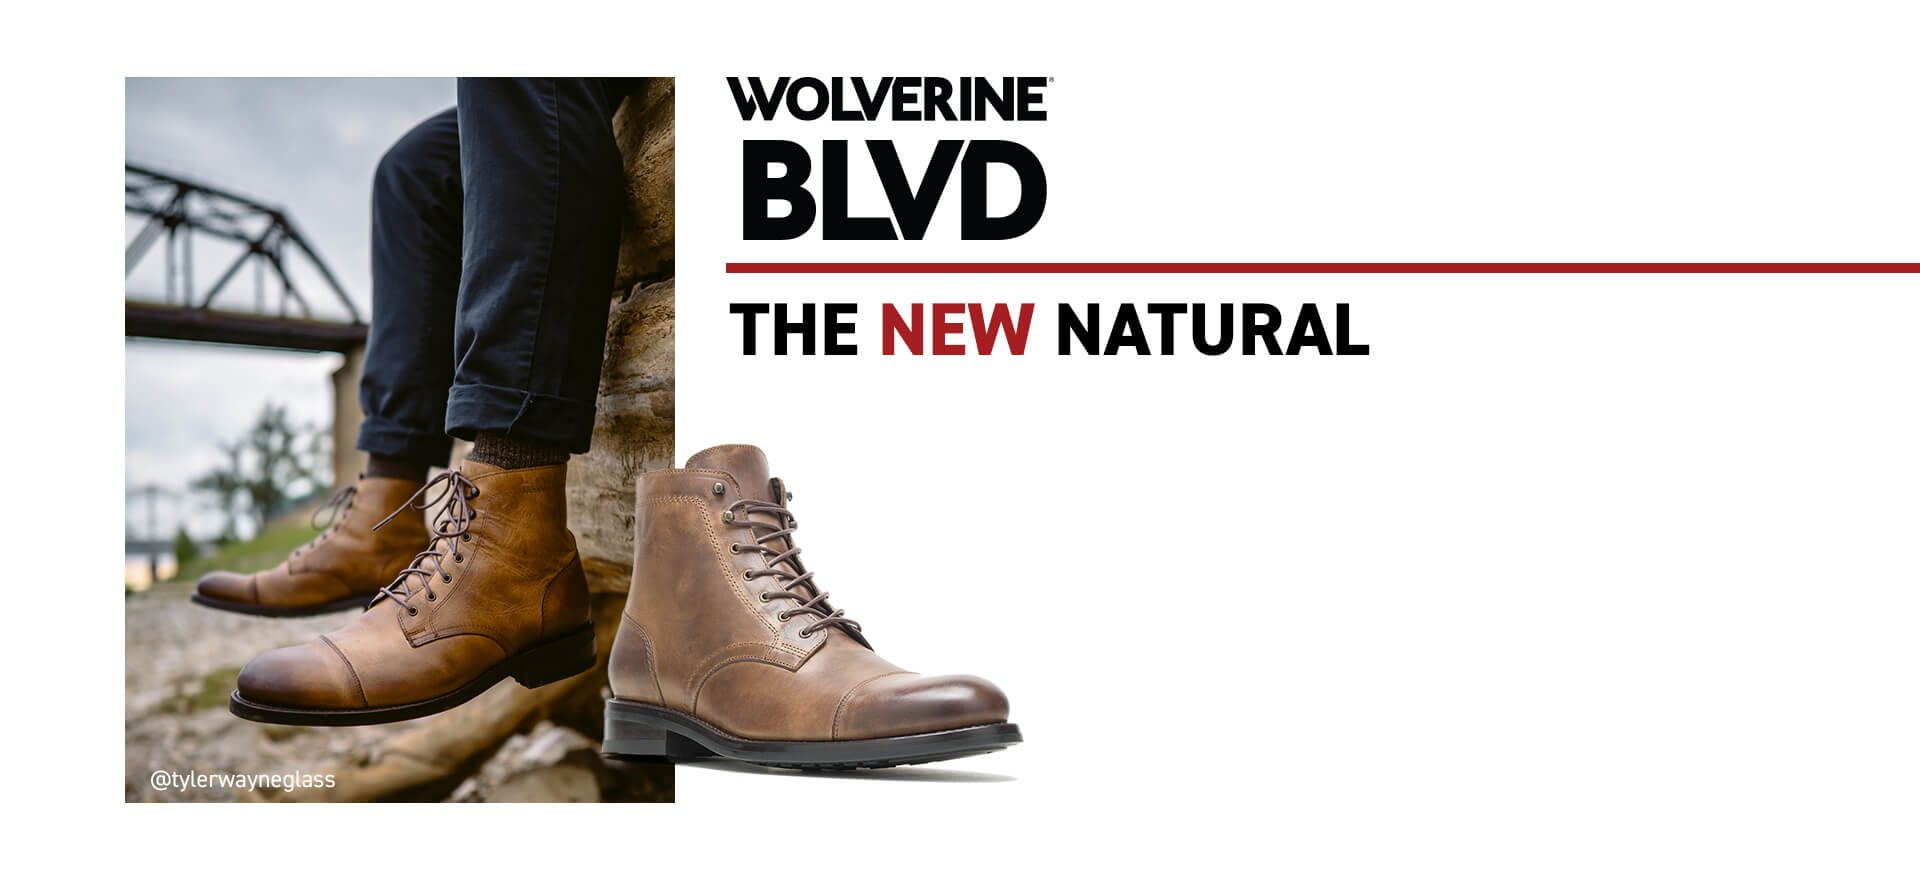 Wolverine BLVD: The New Natural.